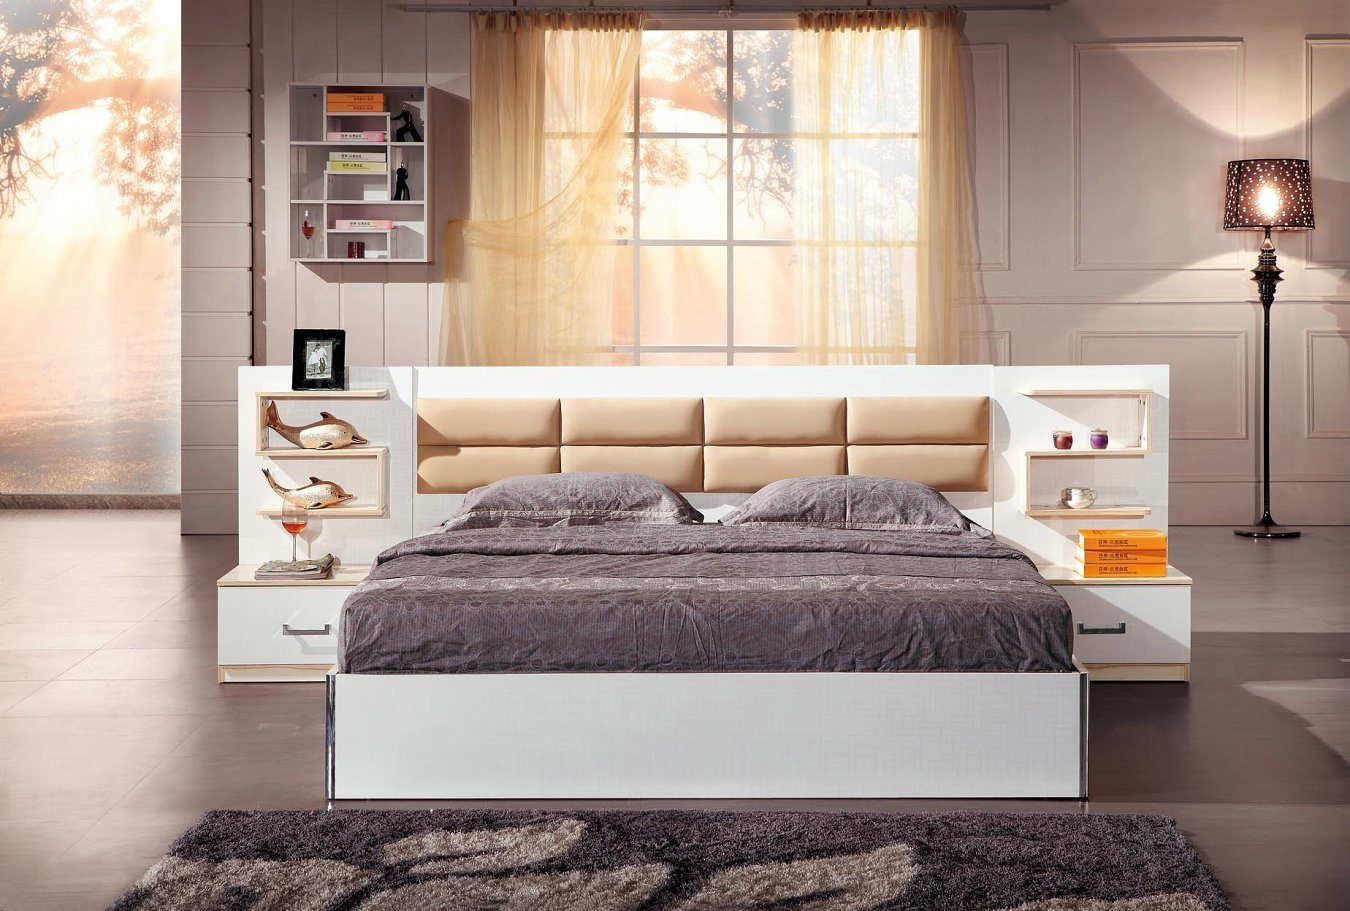 china mdf bedroom furniture sets in double bed china pu bedhead rh zhonghaifurniture en made in china com Ashley Furniture Bedroom Sets mdf wood bedroom set